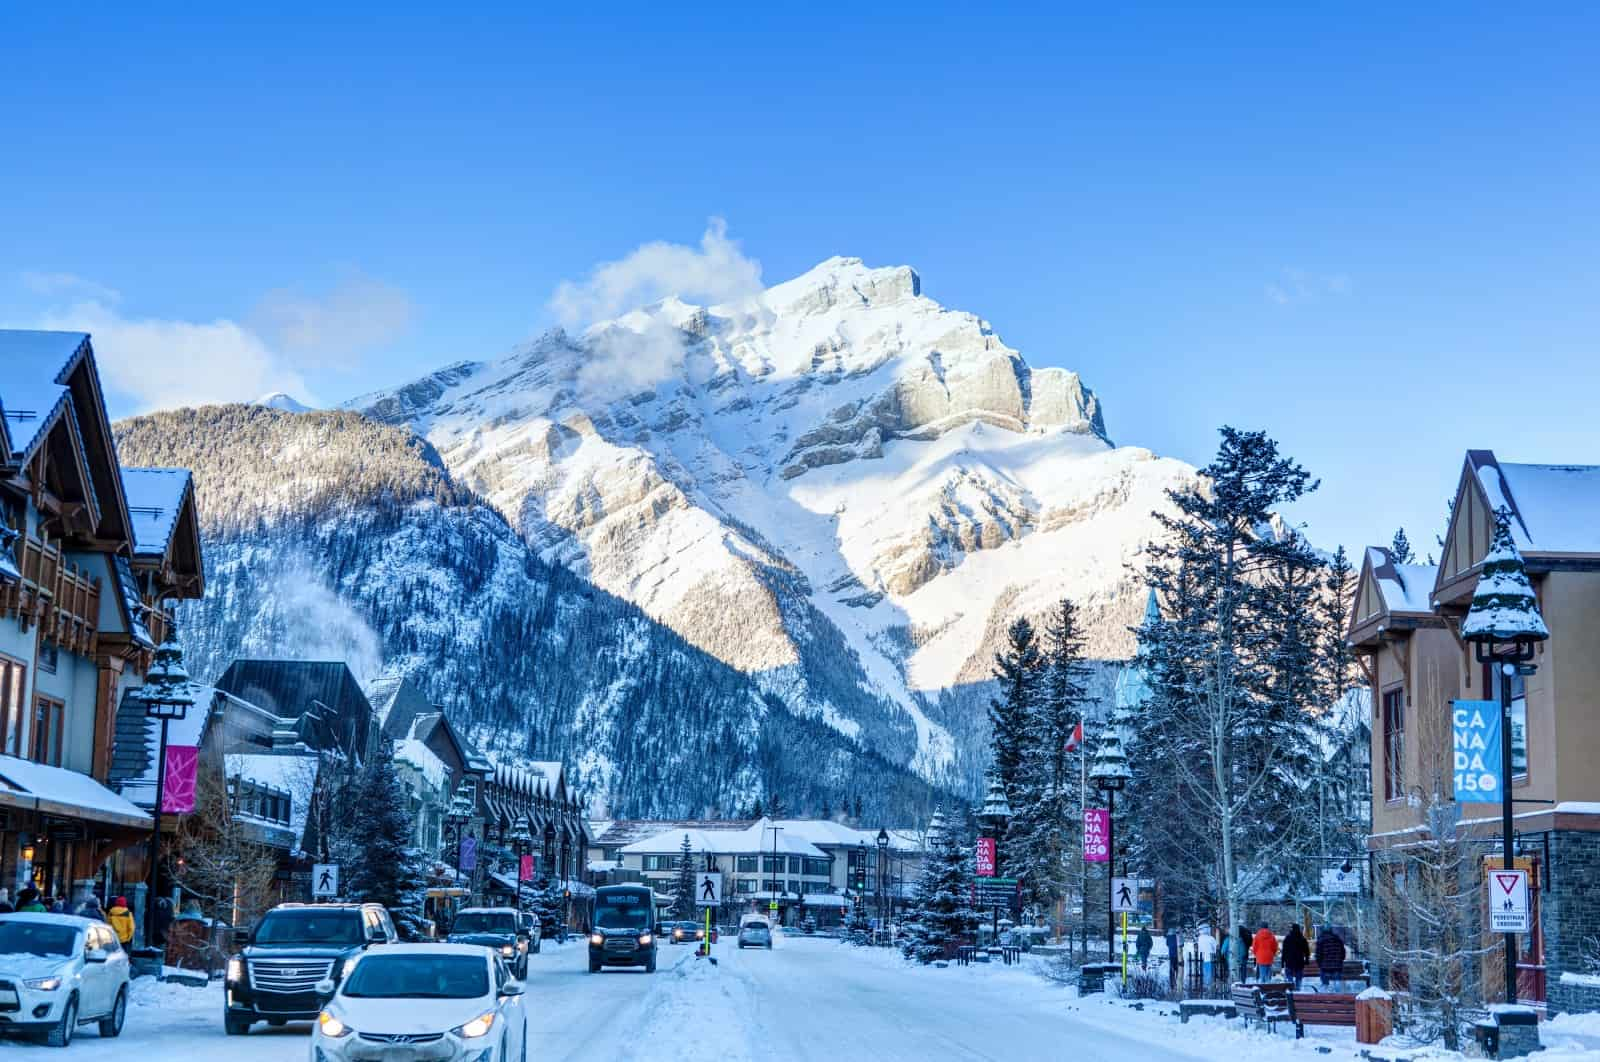 Wander downtown Banff in the Wintertime Banff in winter